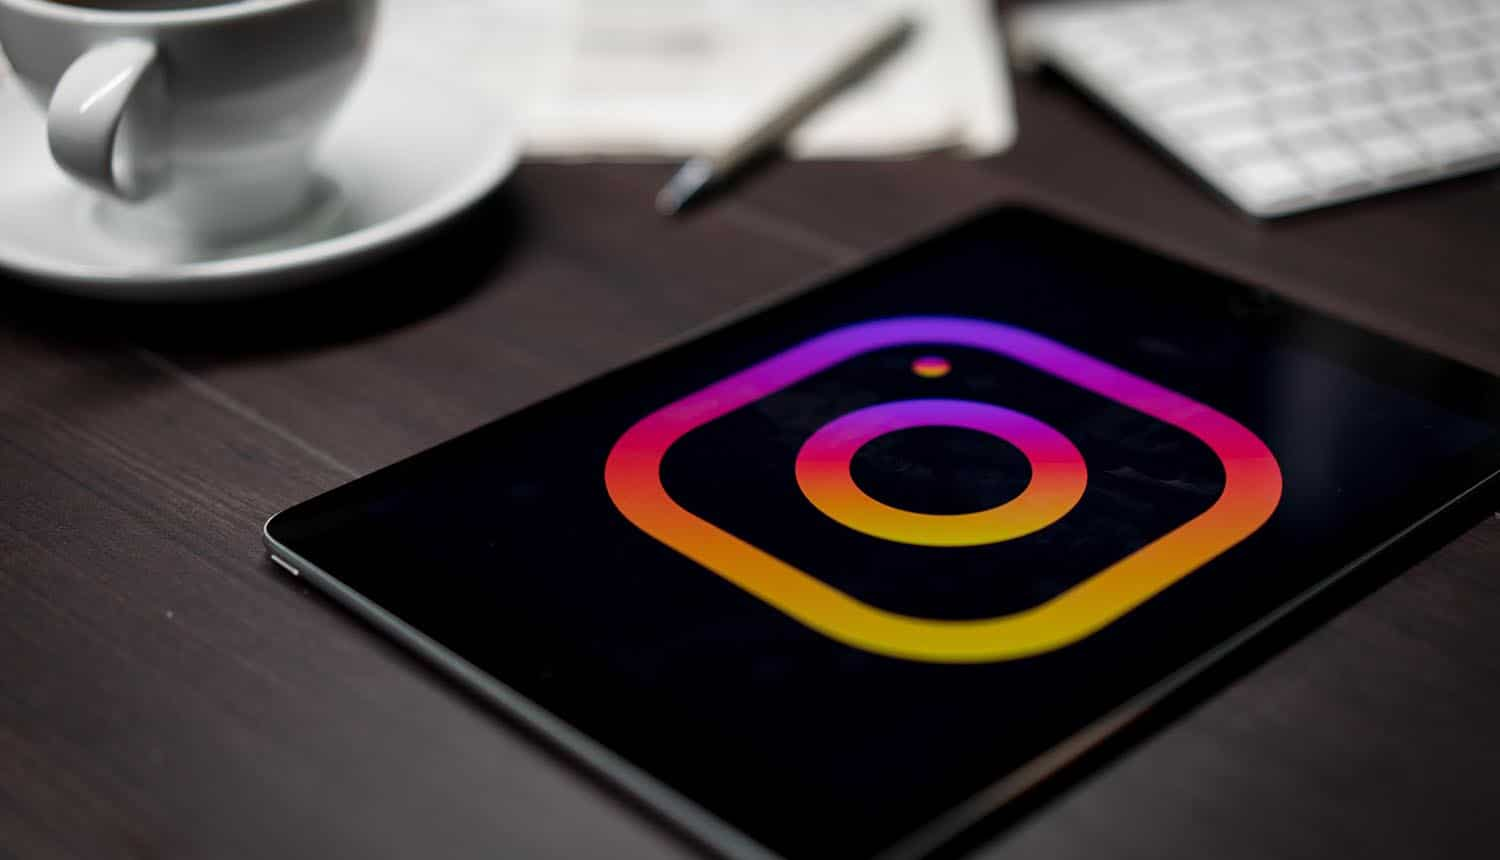 Logo of Instagram on tablet on office desk showing the need to protect your privacy